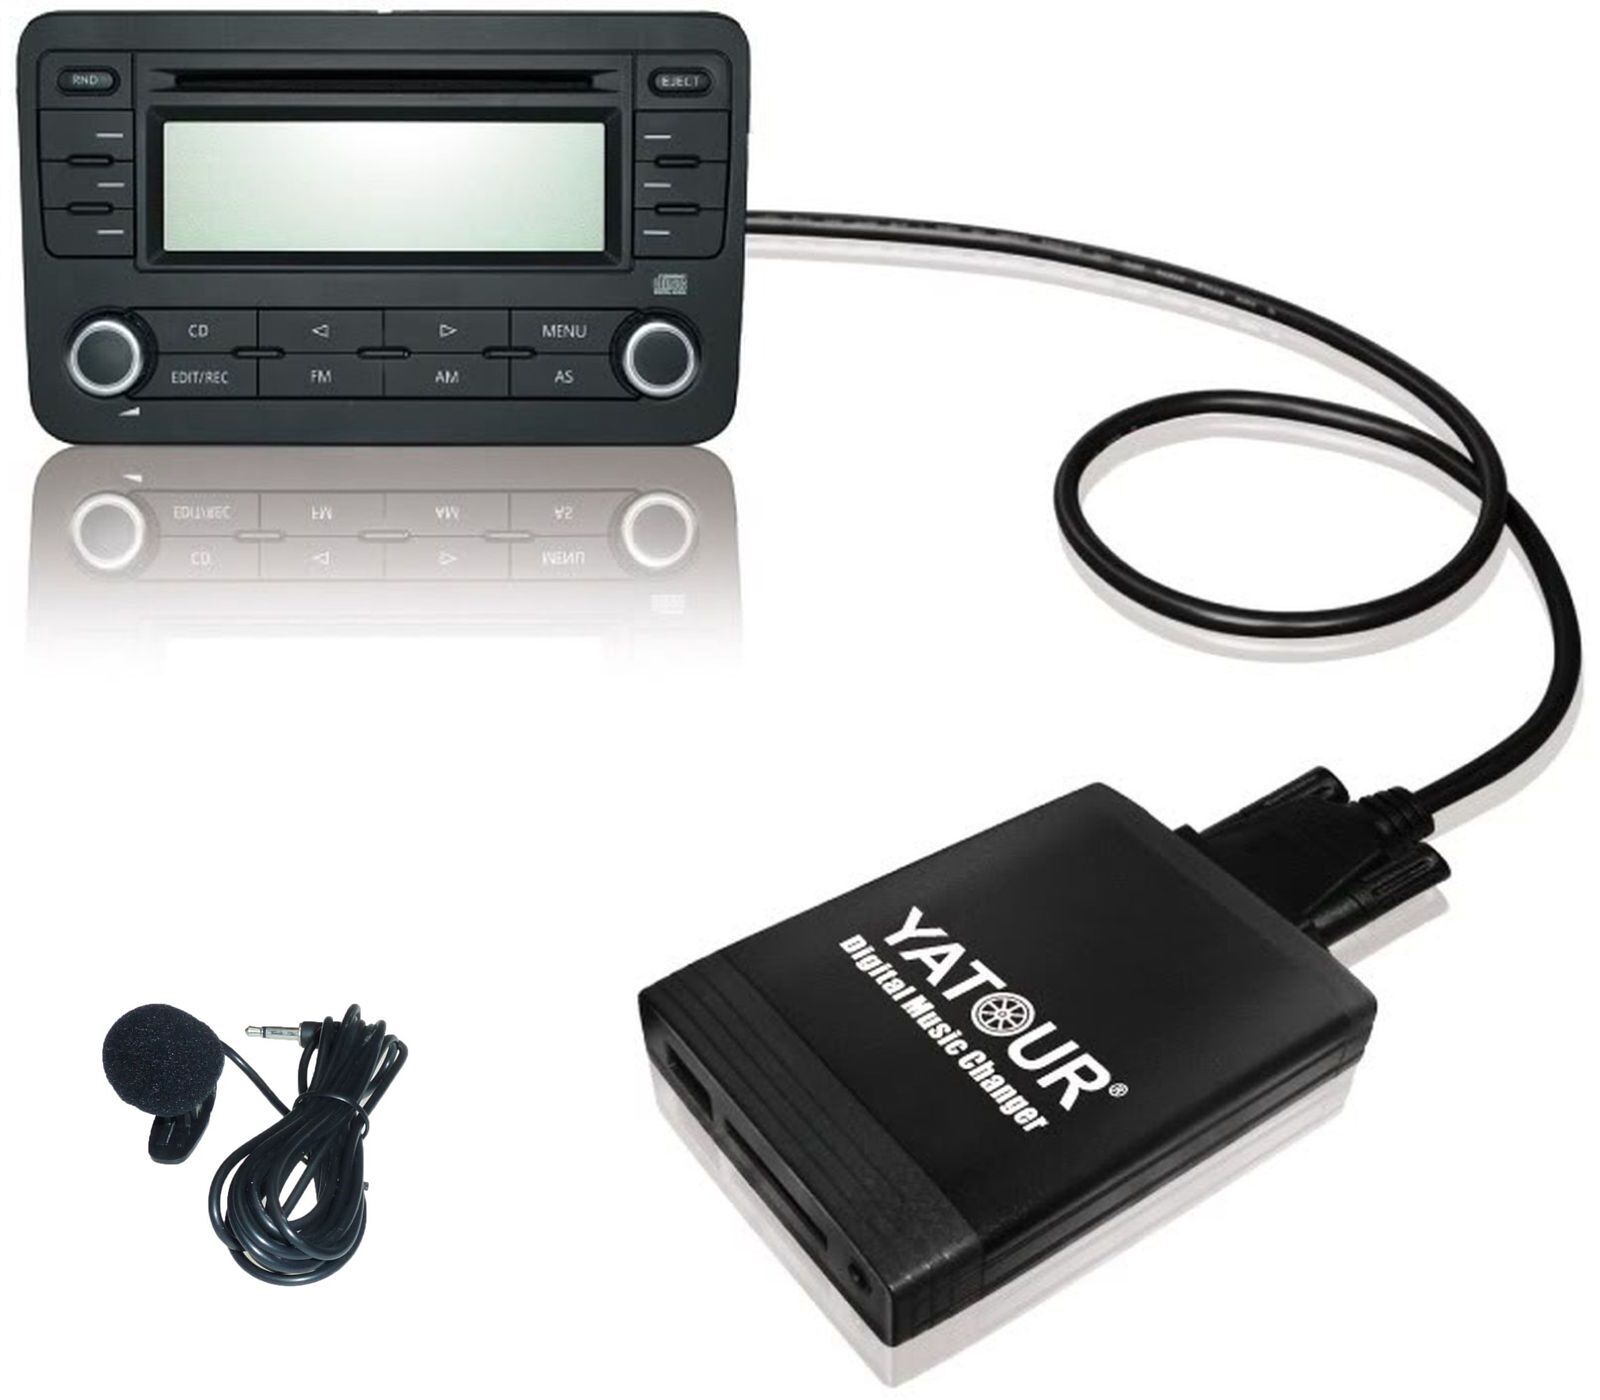 Adapter Usb Sd Aux Mit Bluetooth: AUX Adapter Bluetooth BT Interface USB SD MP3 CD VW 12pin